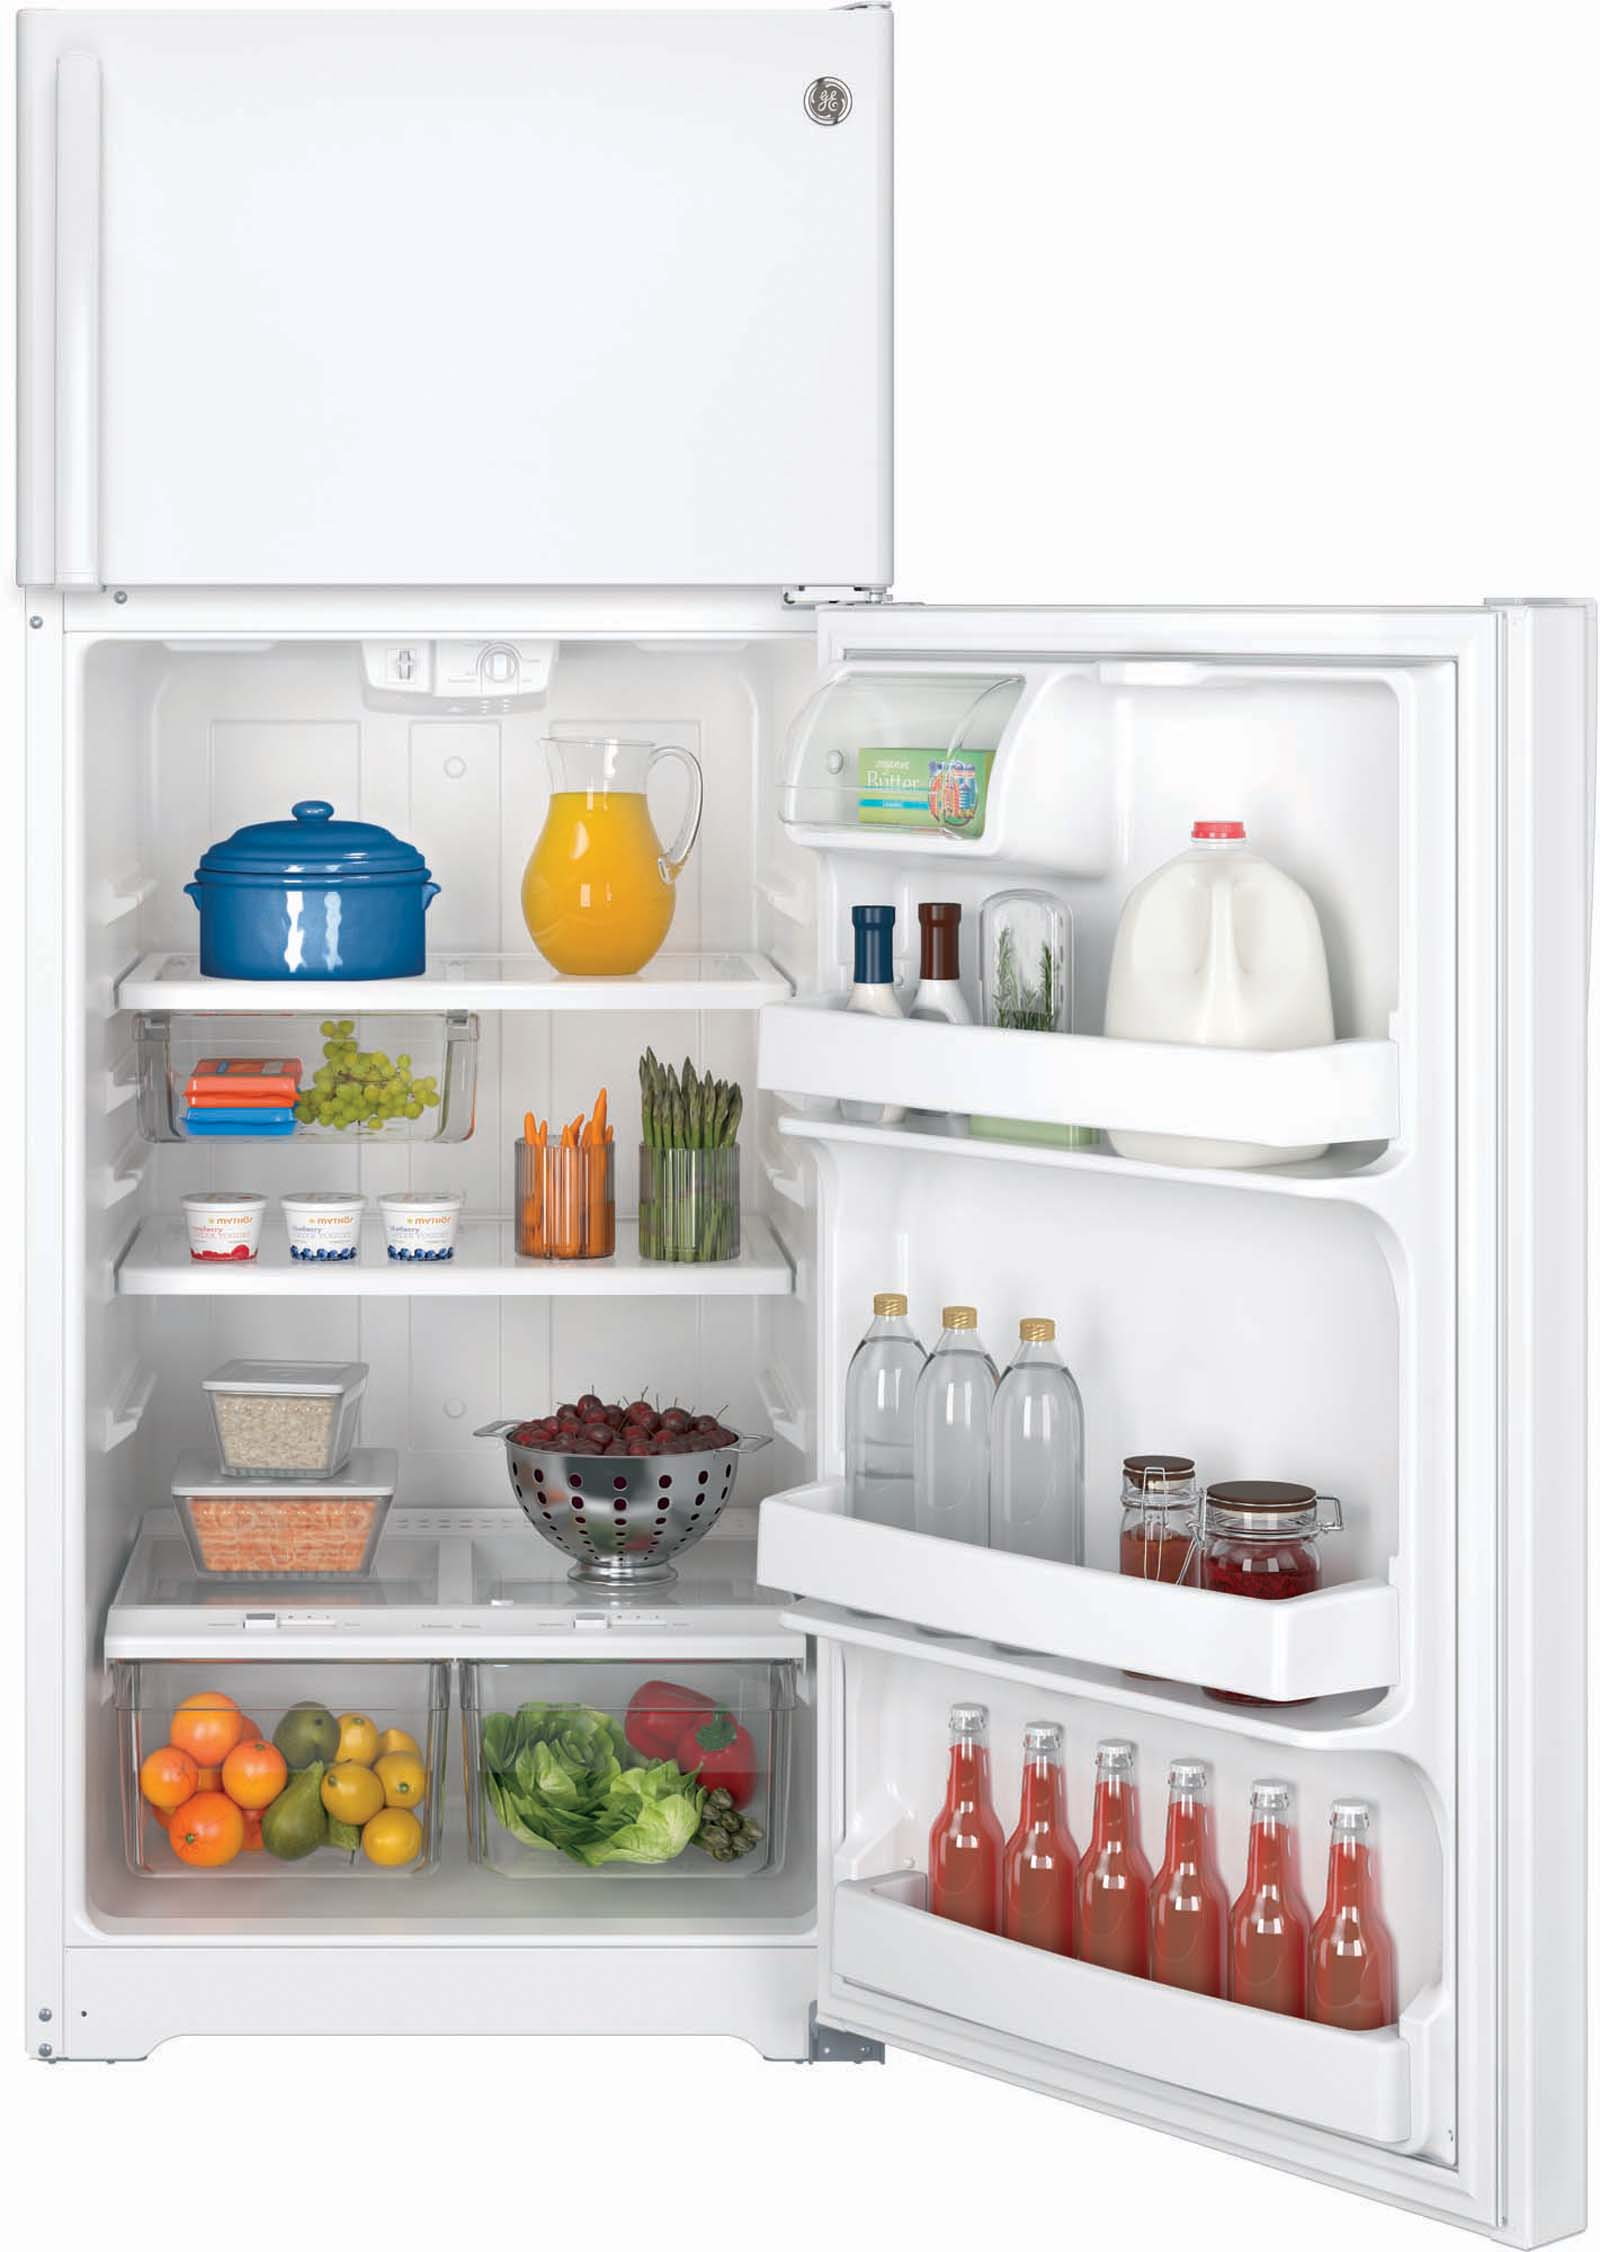 GE Appliances GTS18GTHWW 17.5 cu. ft. Top-Freezer Refrigerator - White